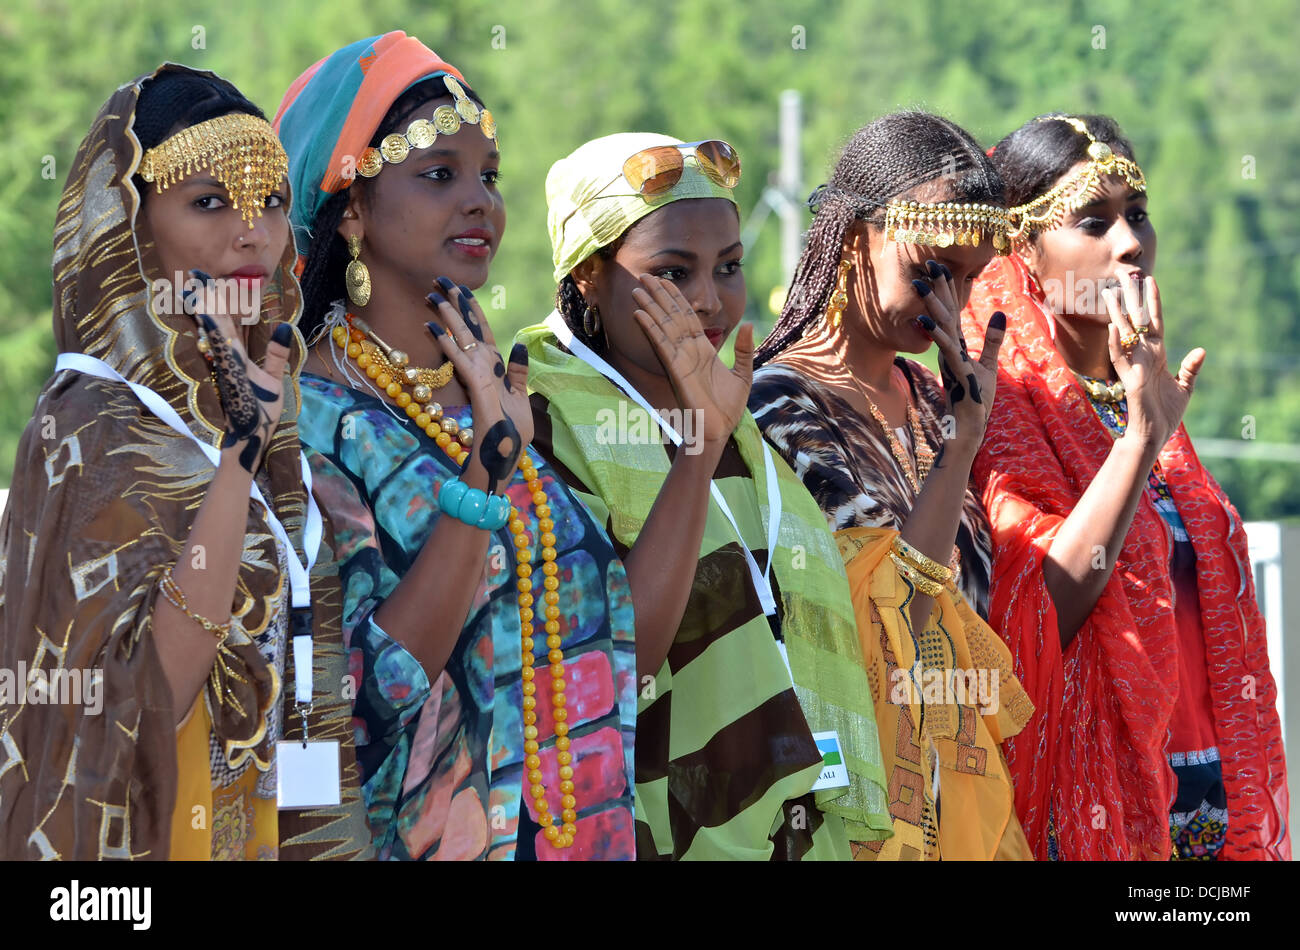 Djibouti dancers in line at the International Festival of Folklore and Dance from the mountains (CIME) - Stock Image